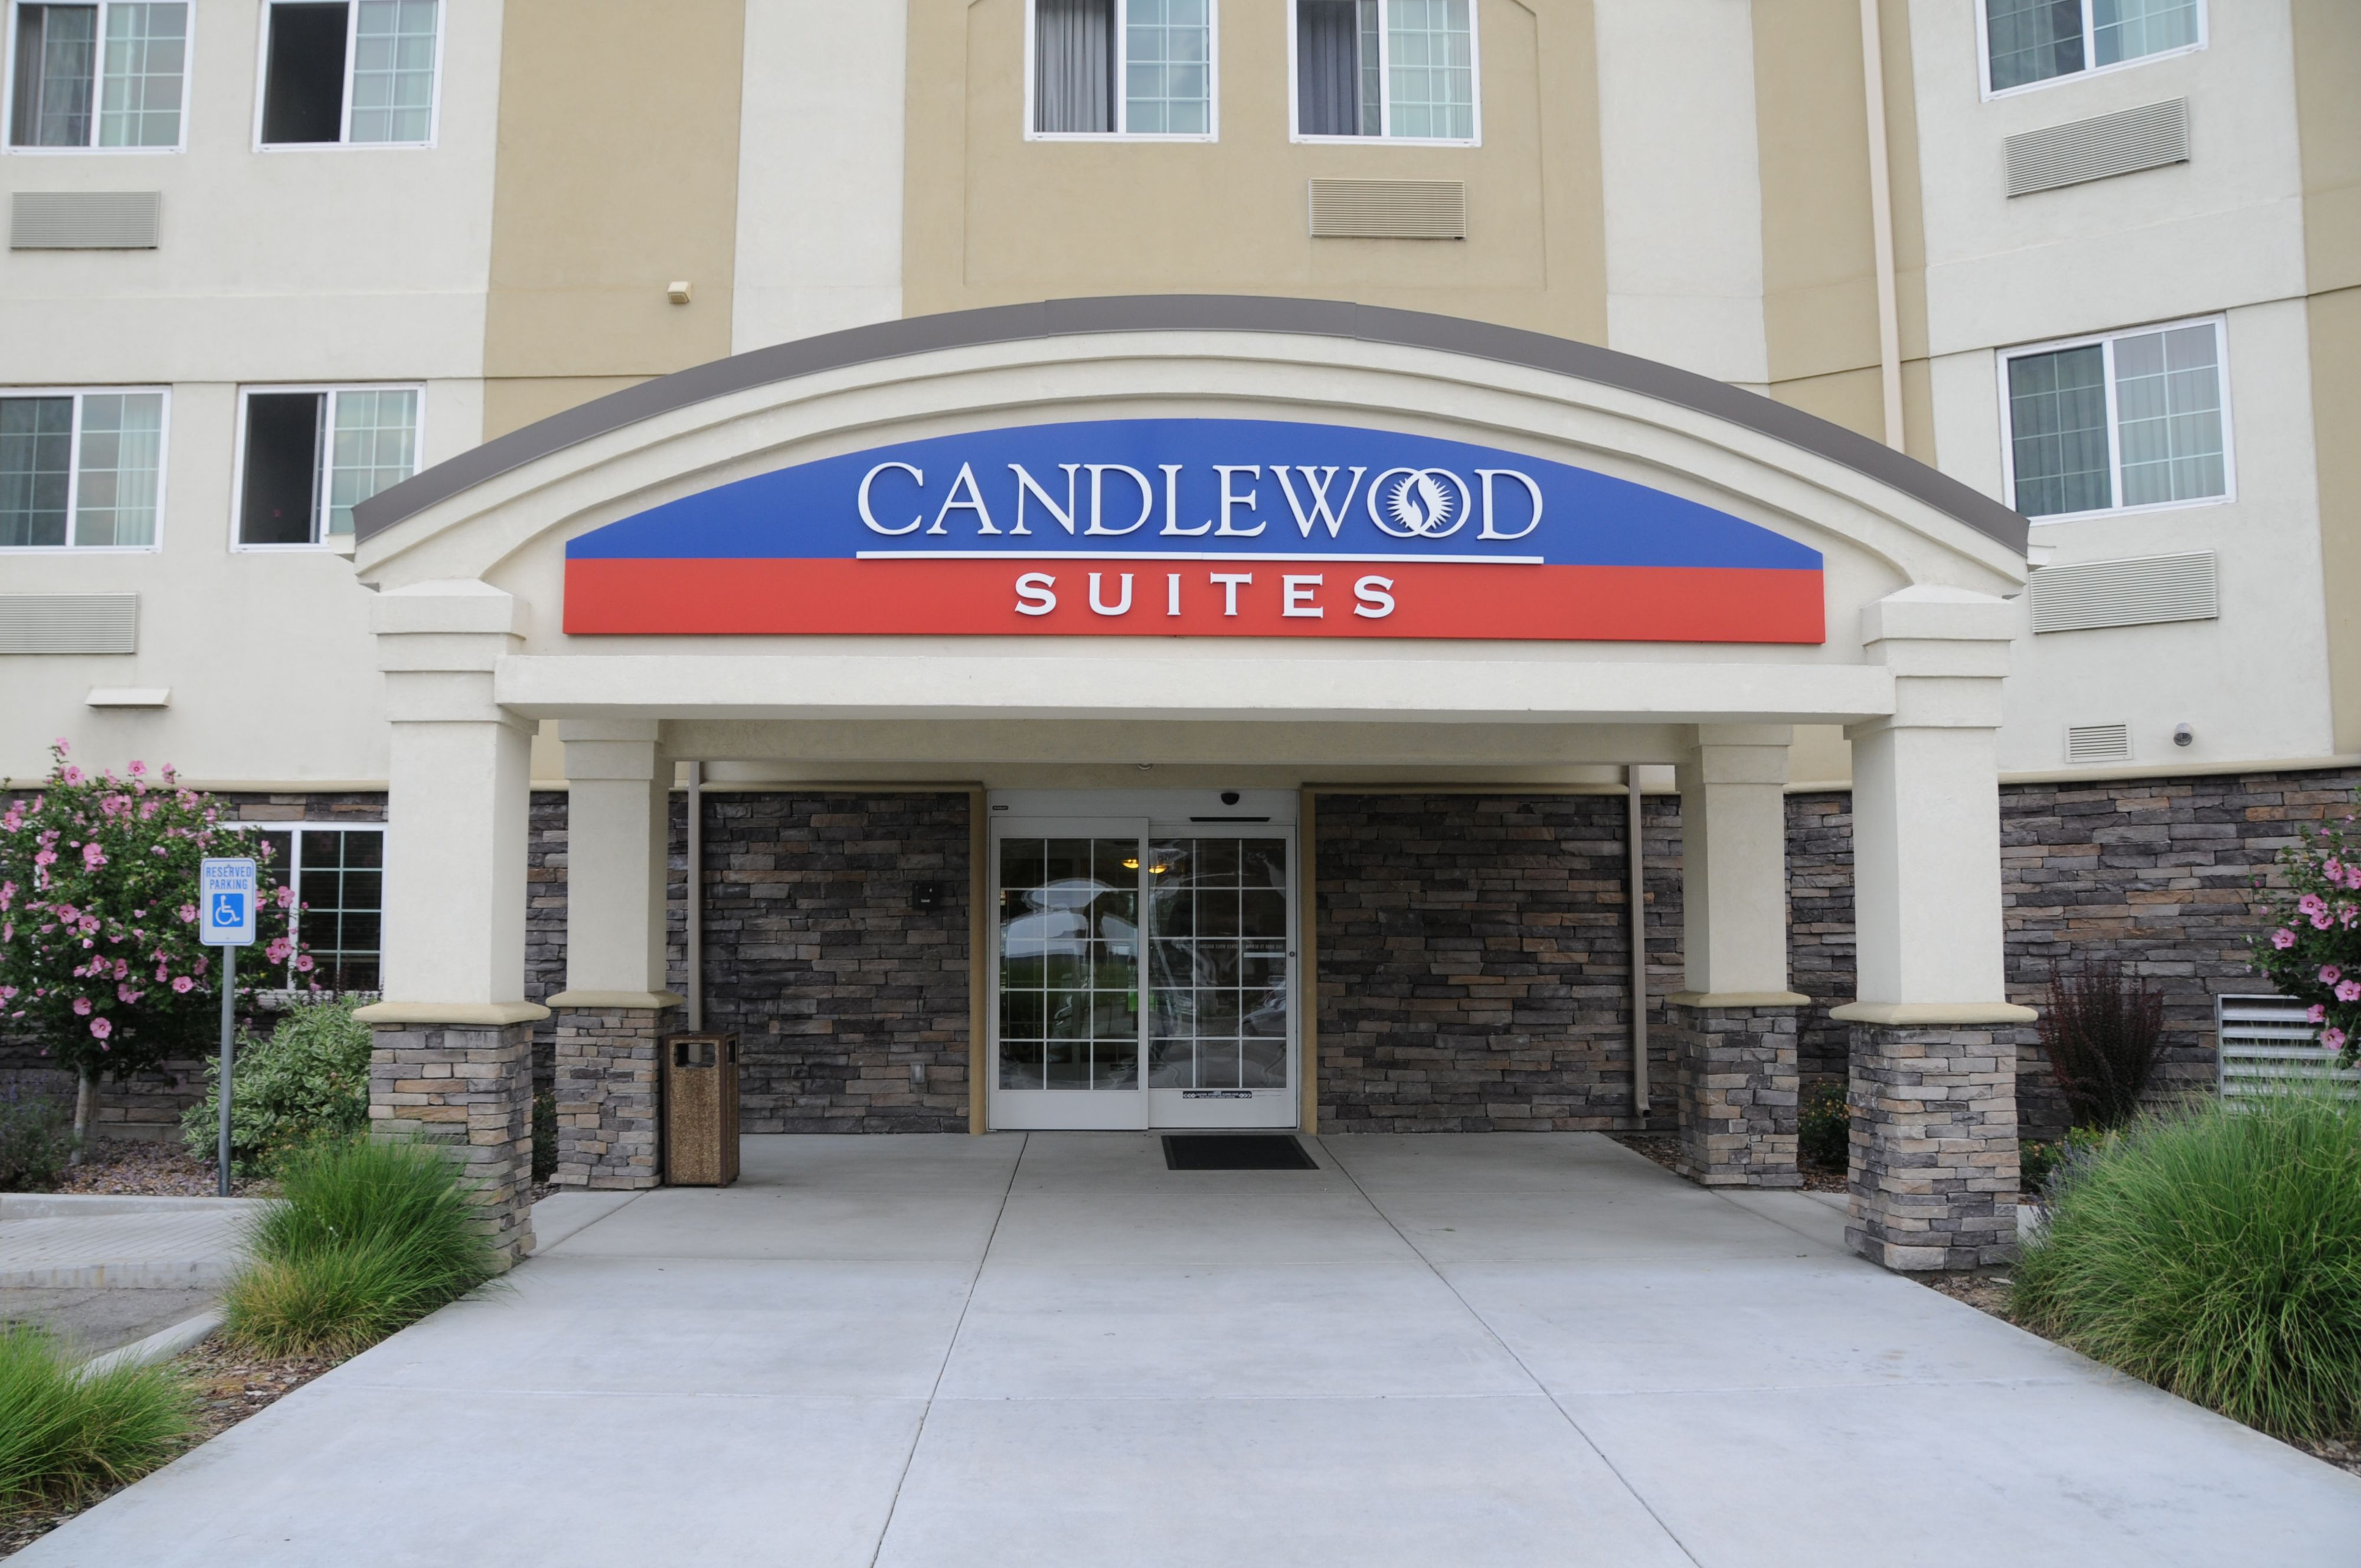 Candlewood Suites Birmingham Homewood At 400 Commons Drive Birmingham Al On Fave